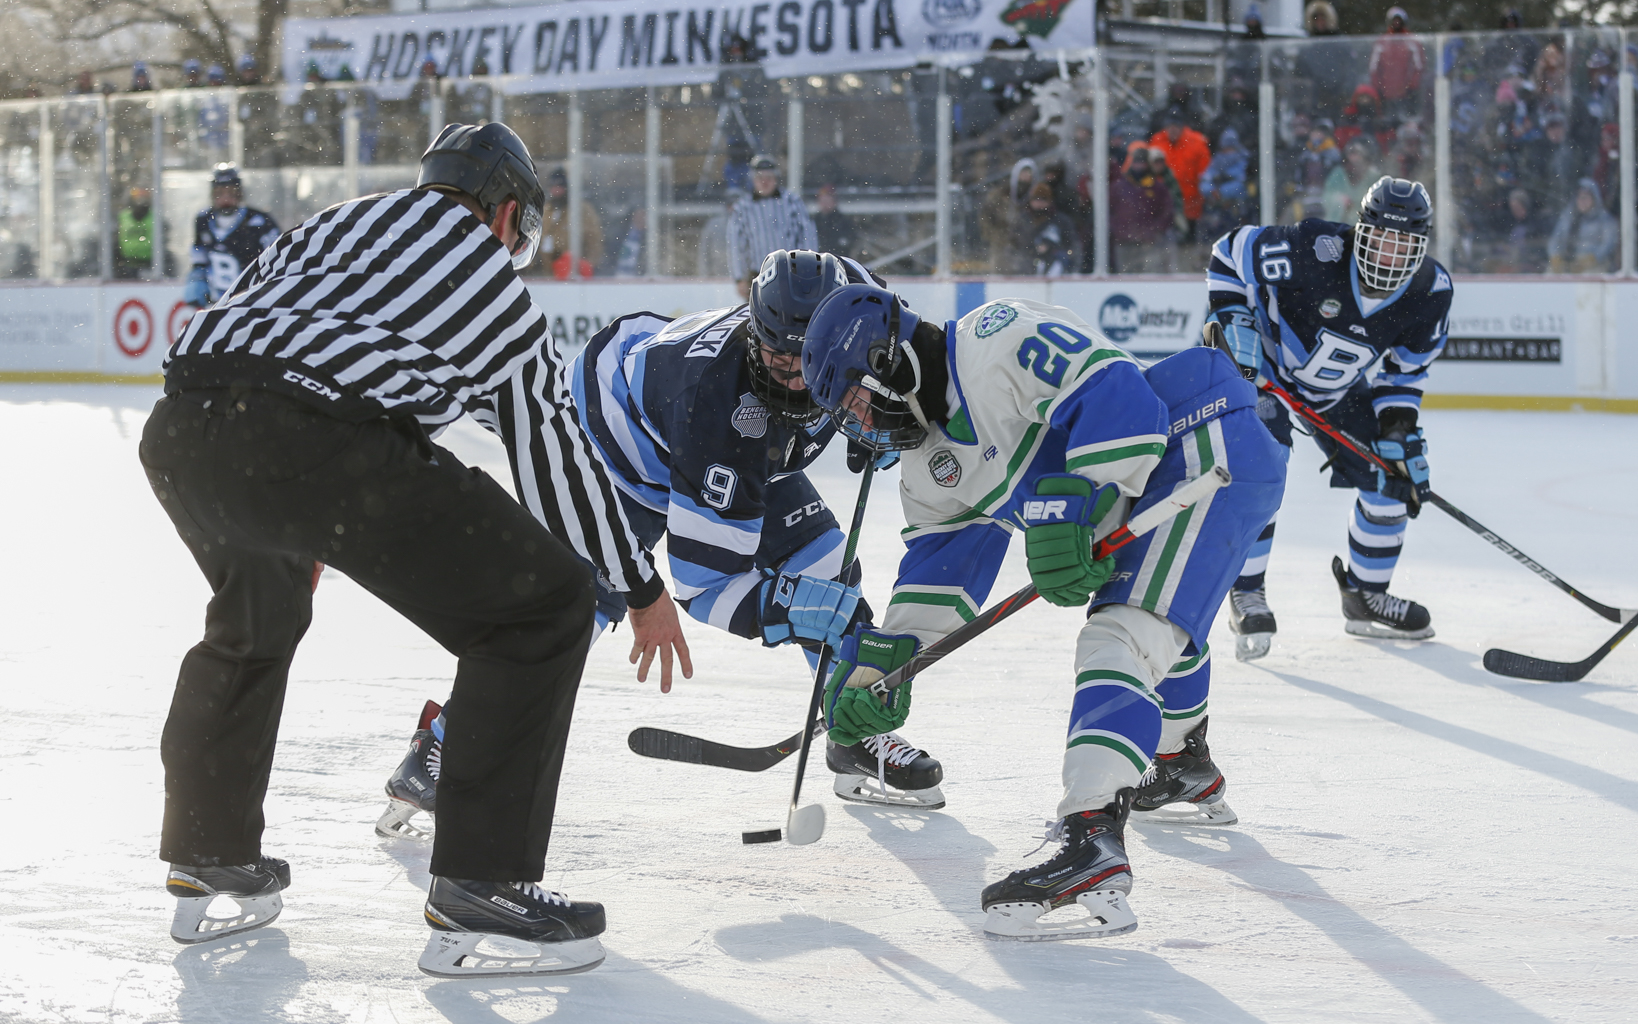 Blake's Joe Miller (20) faces off against Blaine's Zach Buzick (9) during the afternoon game of Hockey Day Minnesota. Miller scored the game-winner for the Bears in their 3-2 victory over the Bengals. Photo by Jeff Lawler, SportsEngine